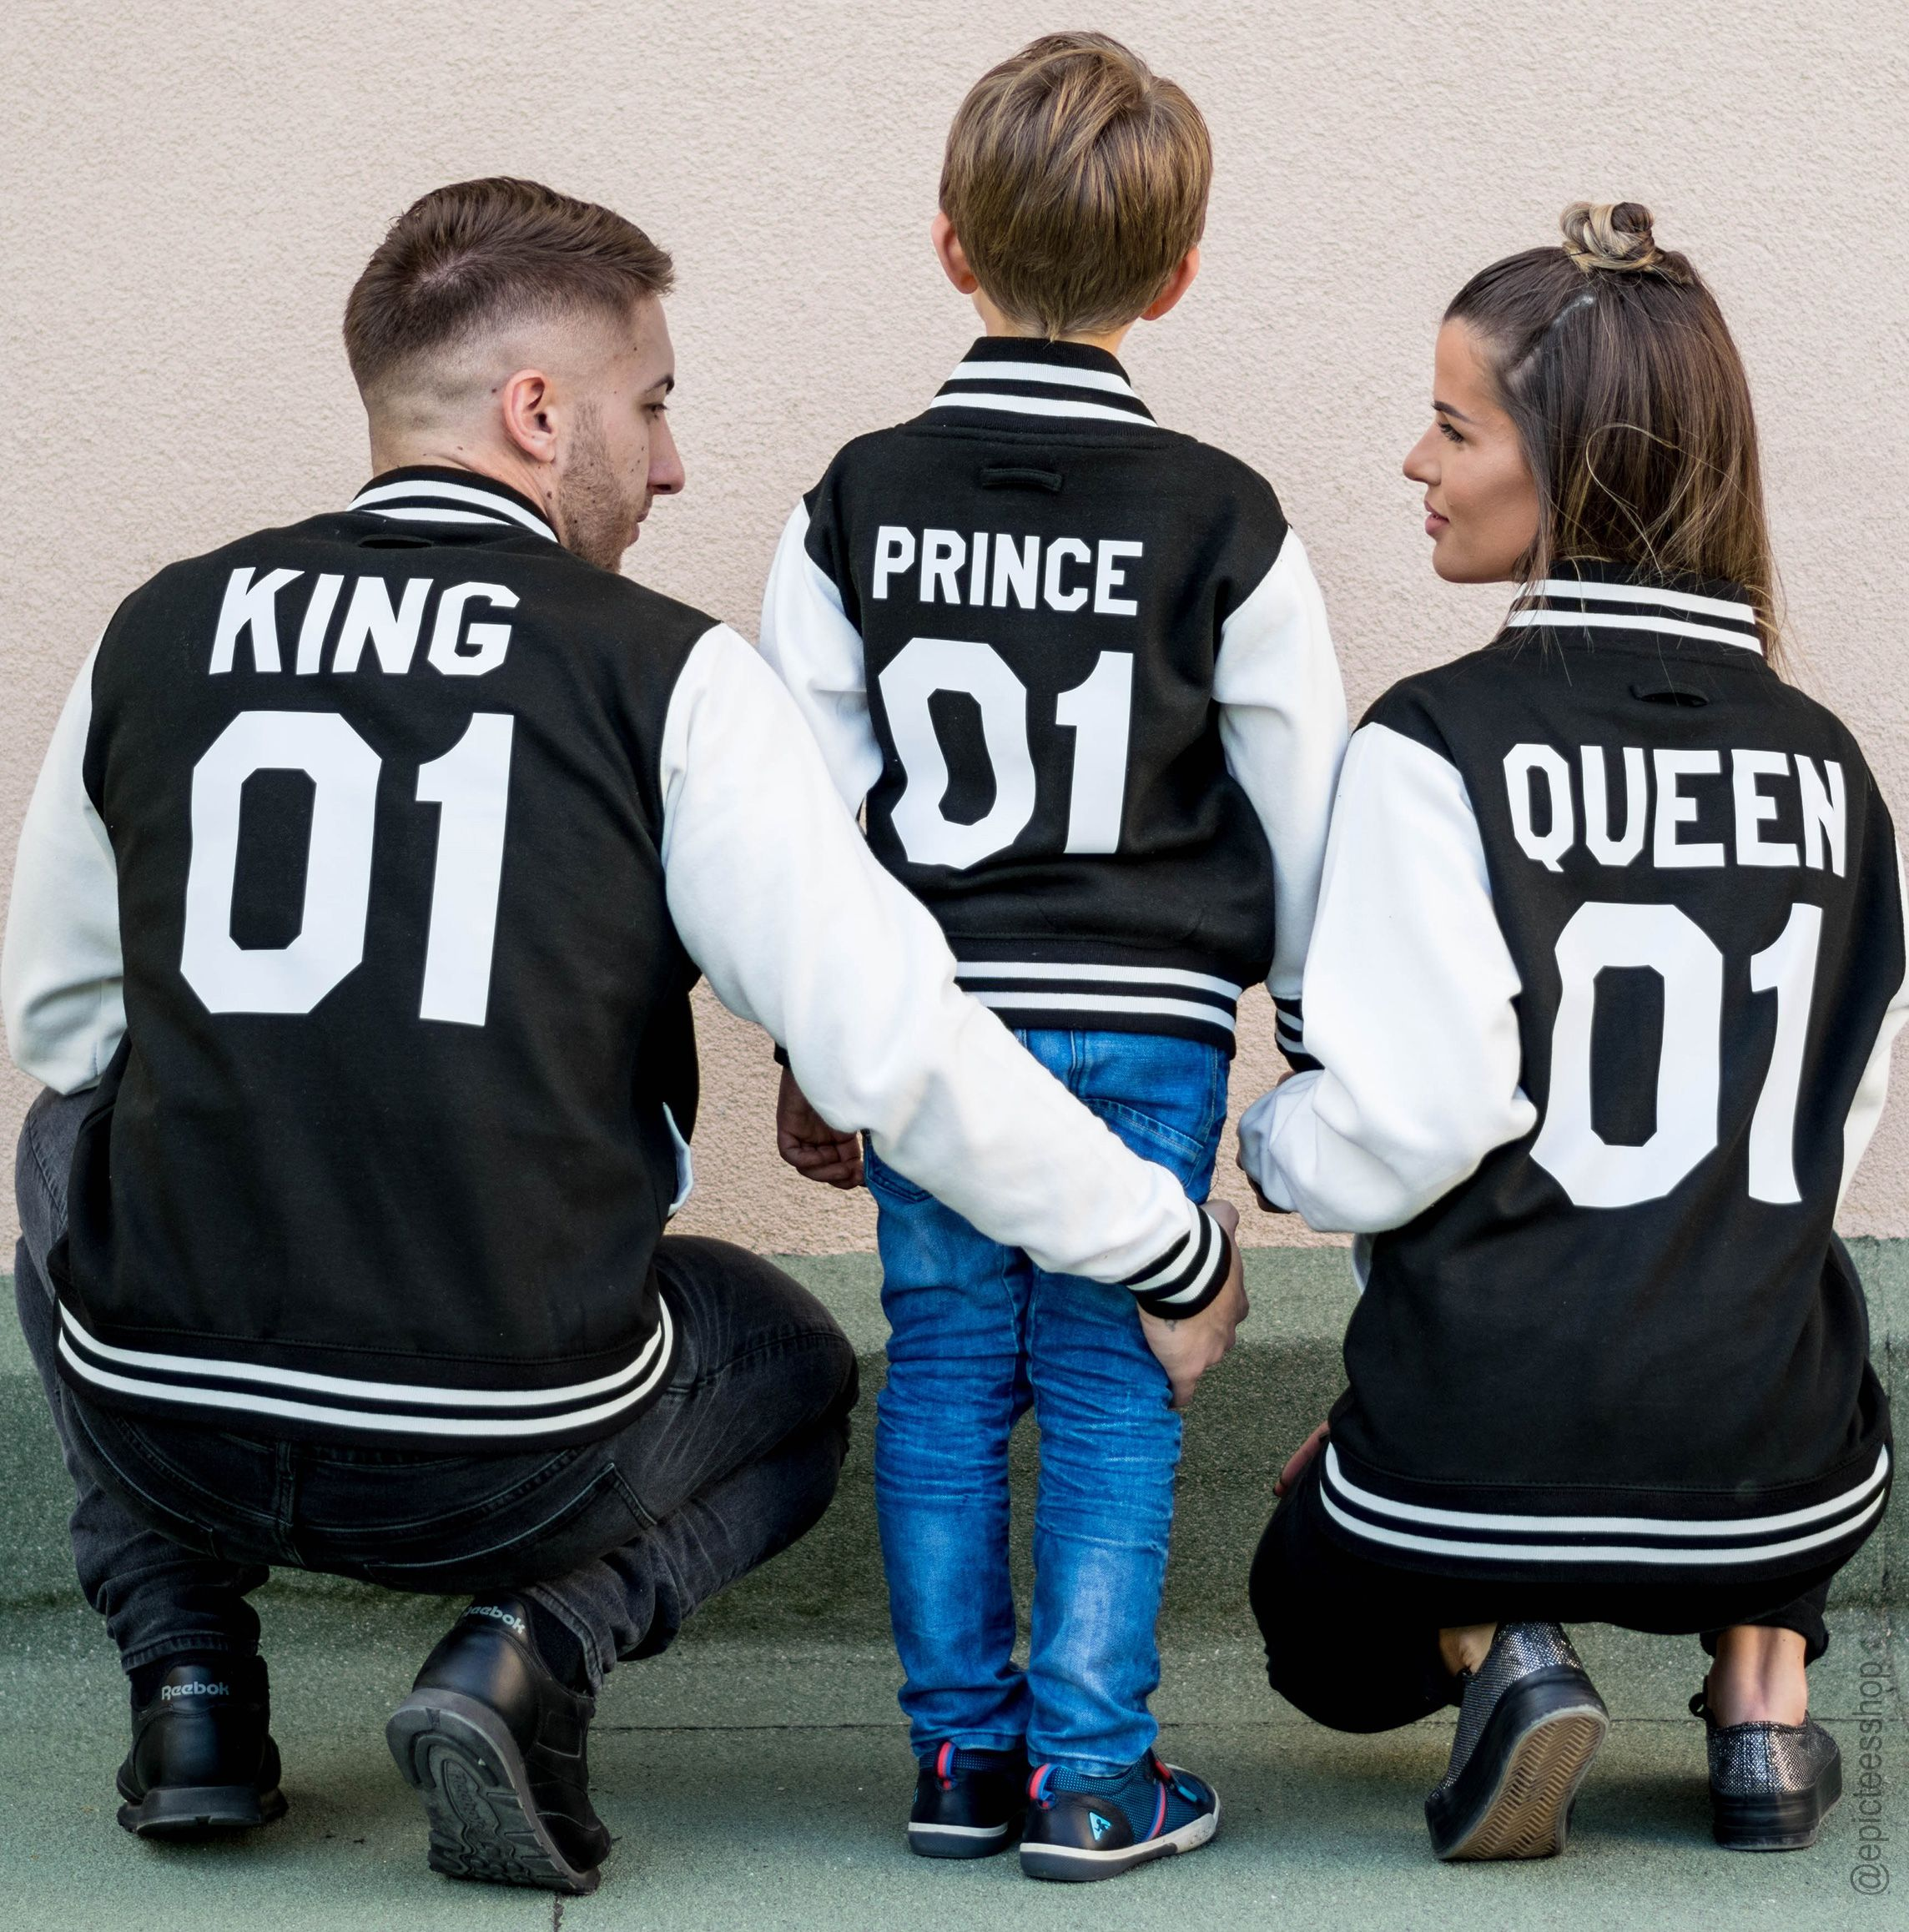 King 01 Queen 01 Prince 01 Varsity Jackets College